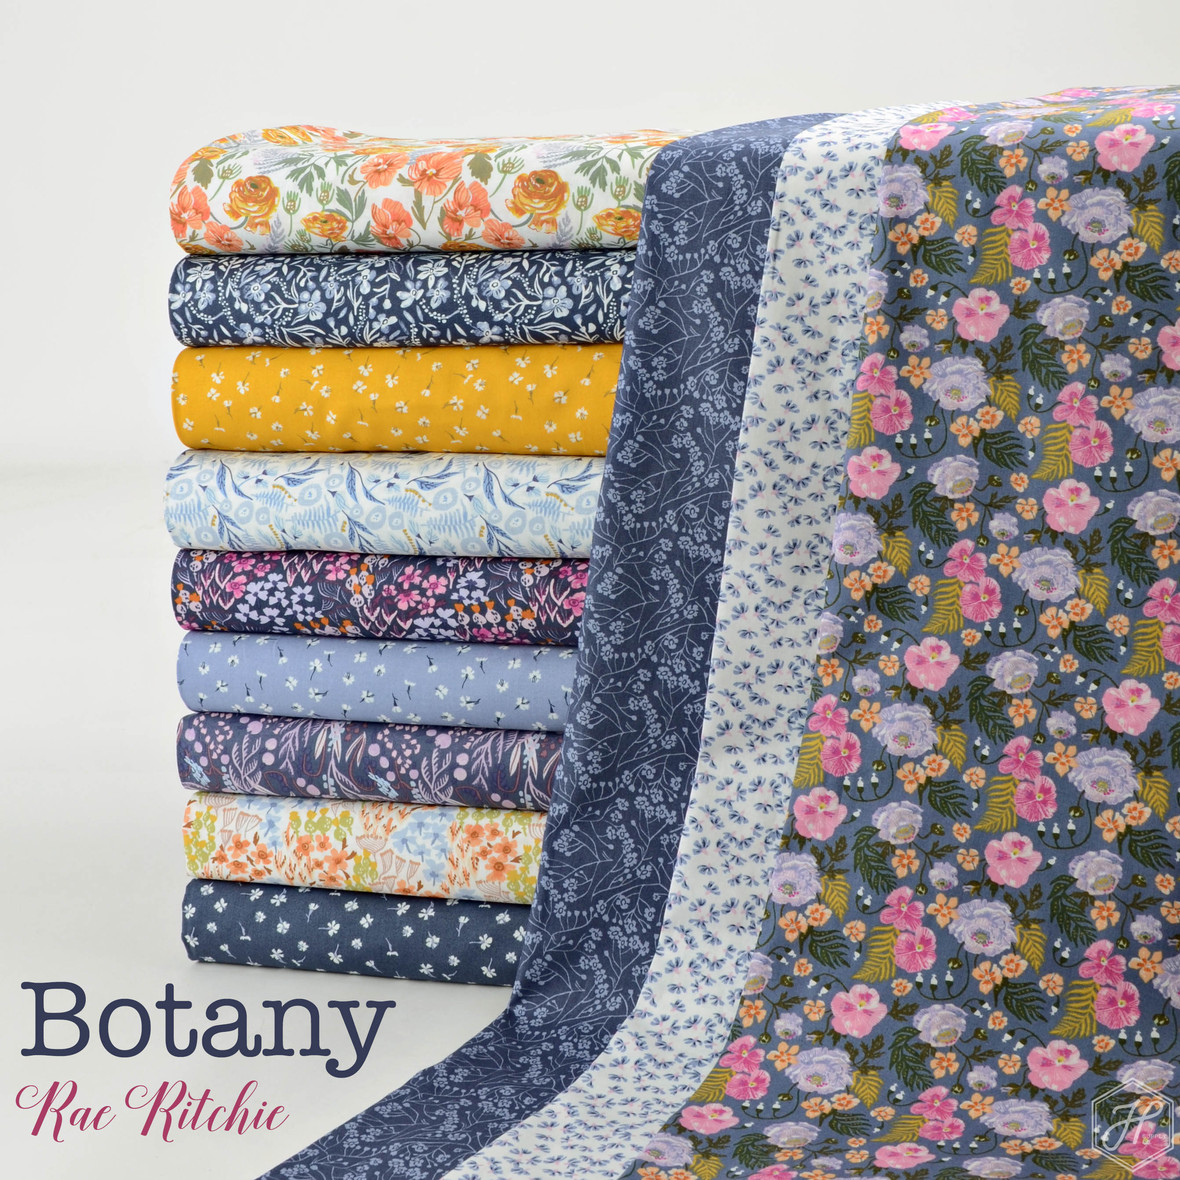 Botany Fabric Rae Ritchie at Hawthorne Supply Co